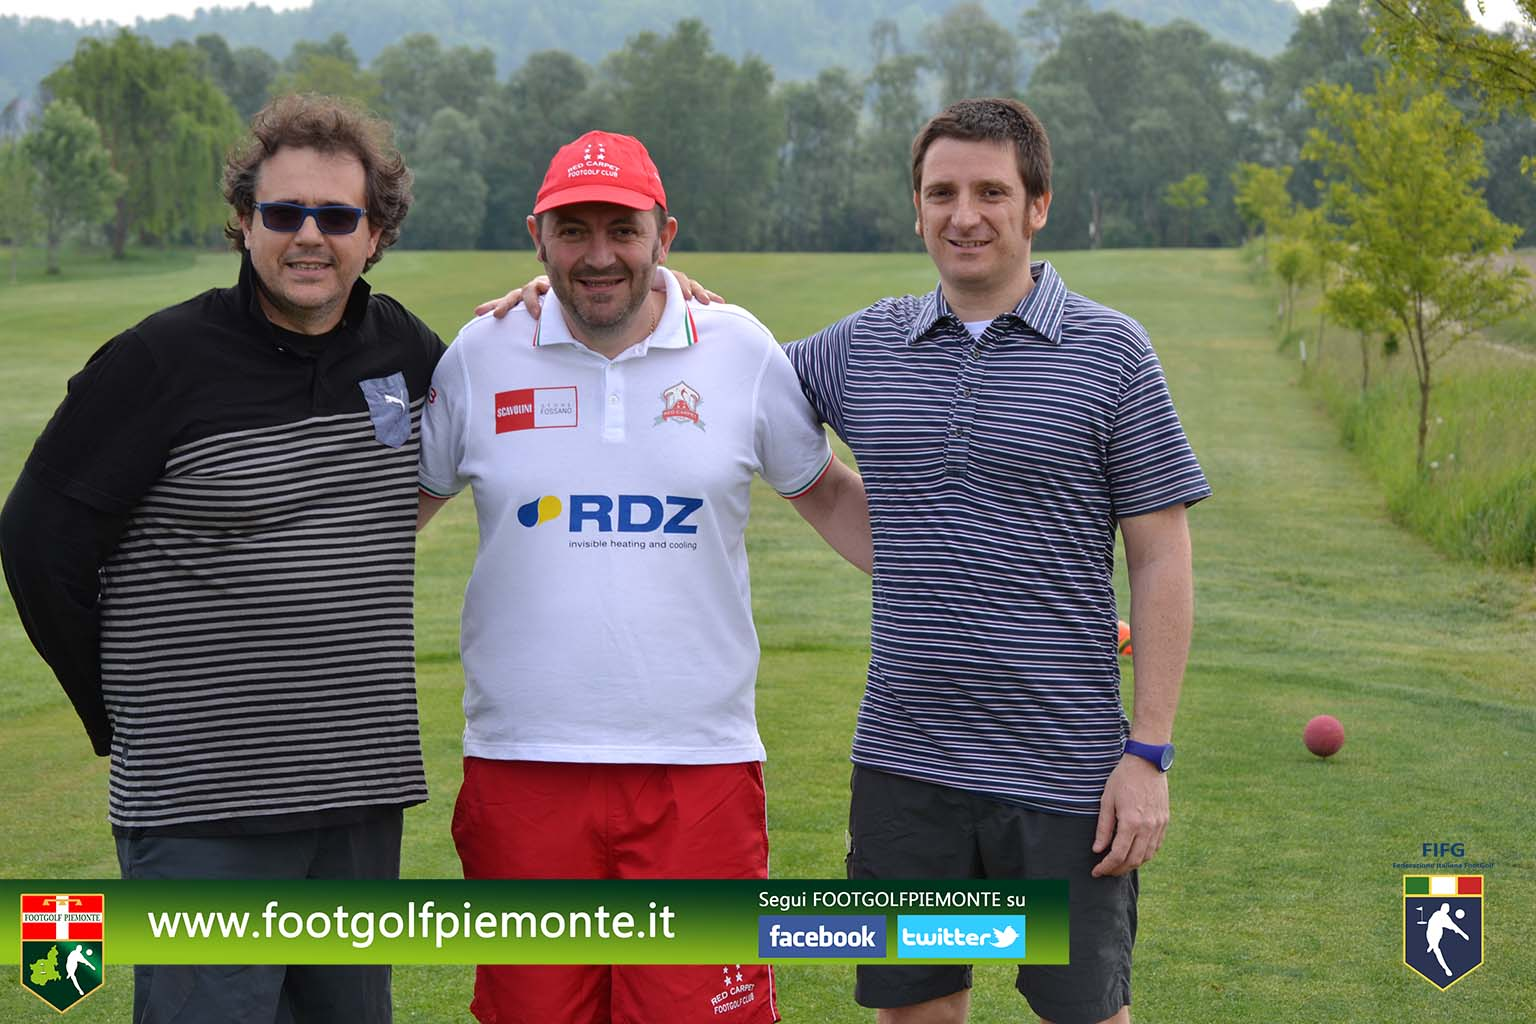 FOTO 9 Regions' Cup Footgolf Piemonte 2016 Golf Città di Asti (At) 30apr16-1